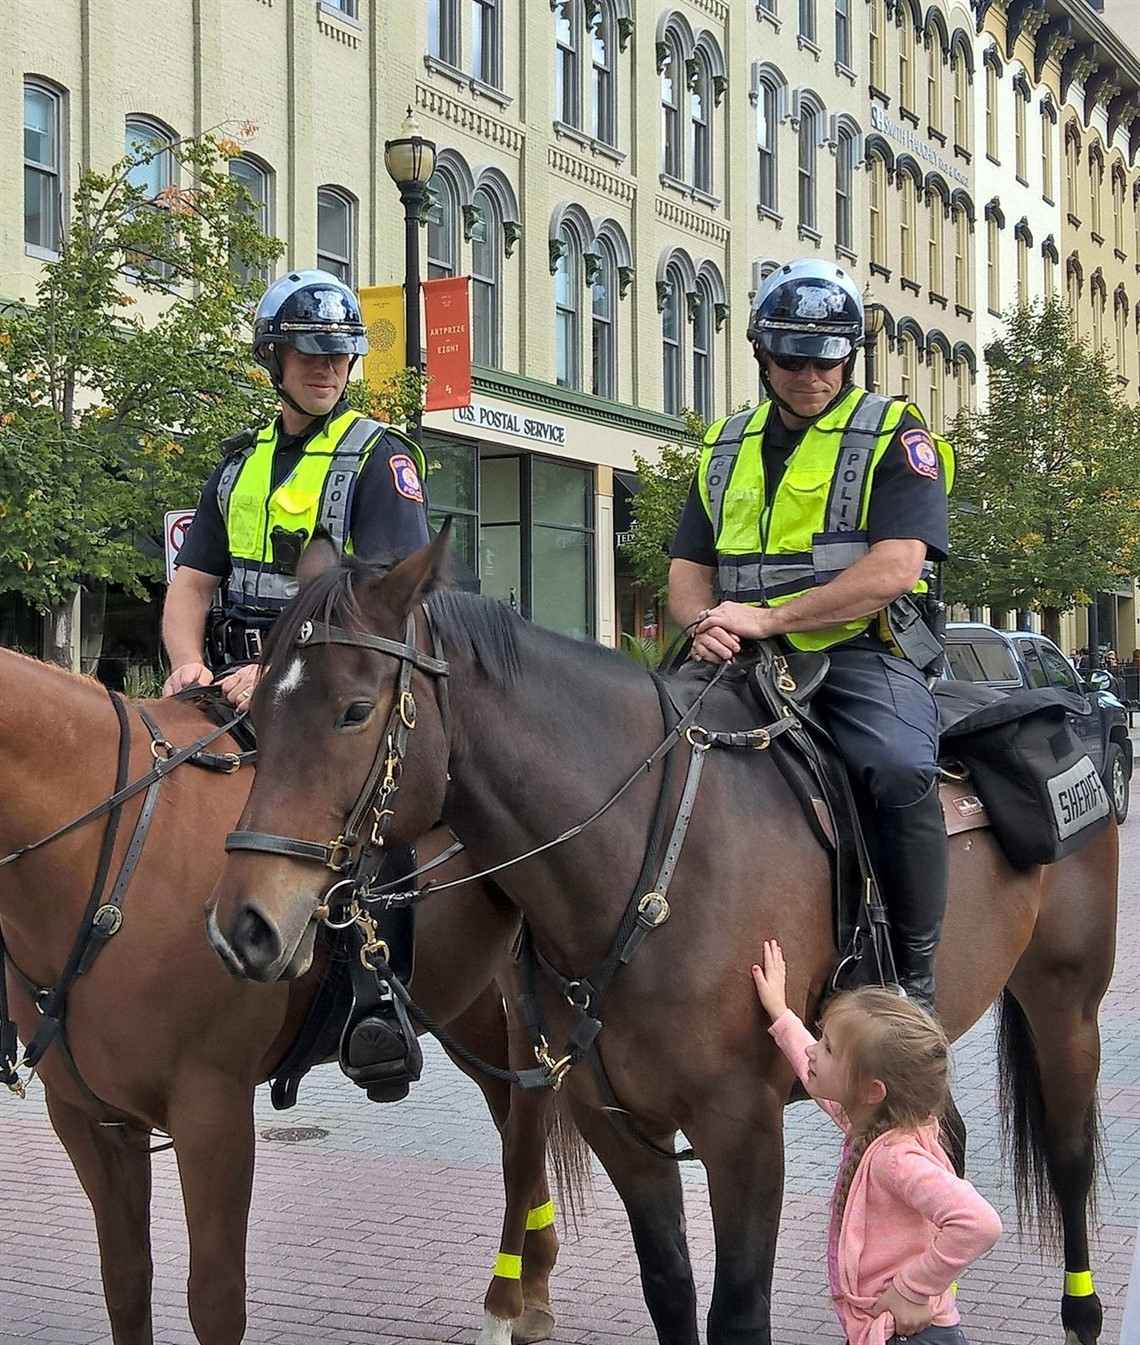 Two officers on horses with little girl